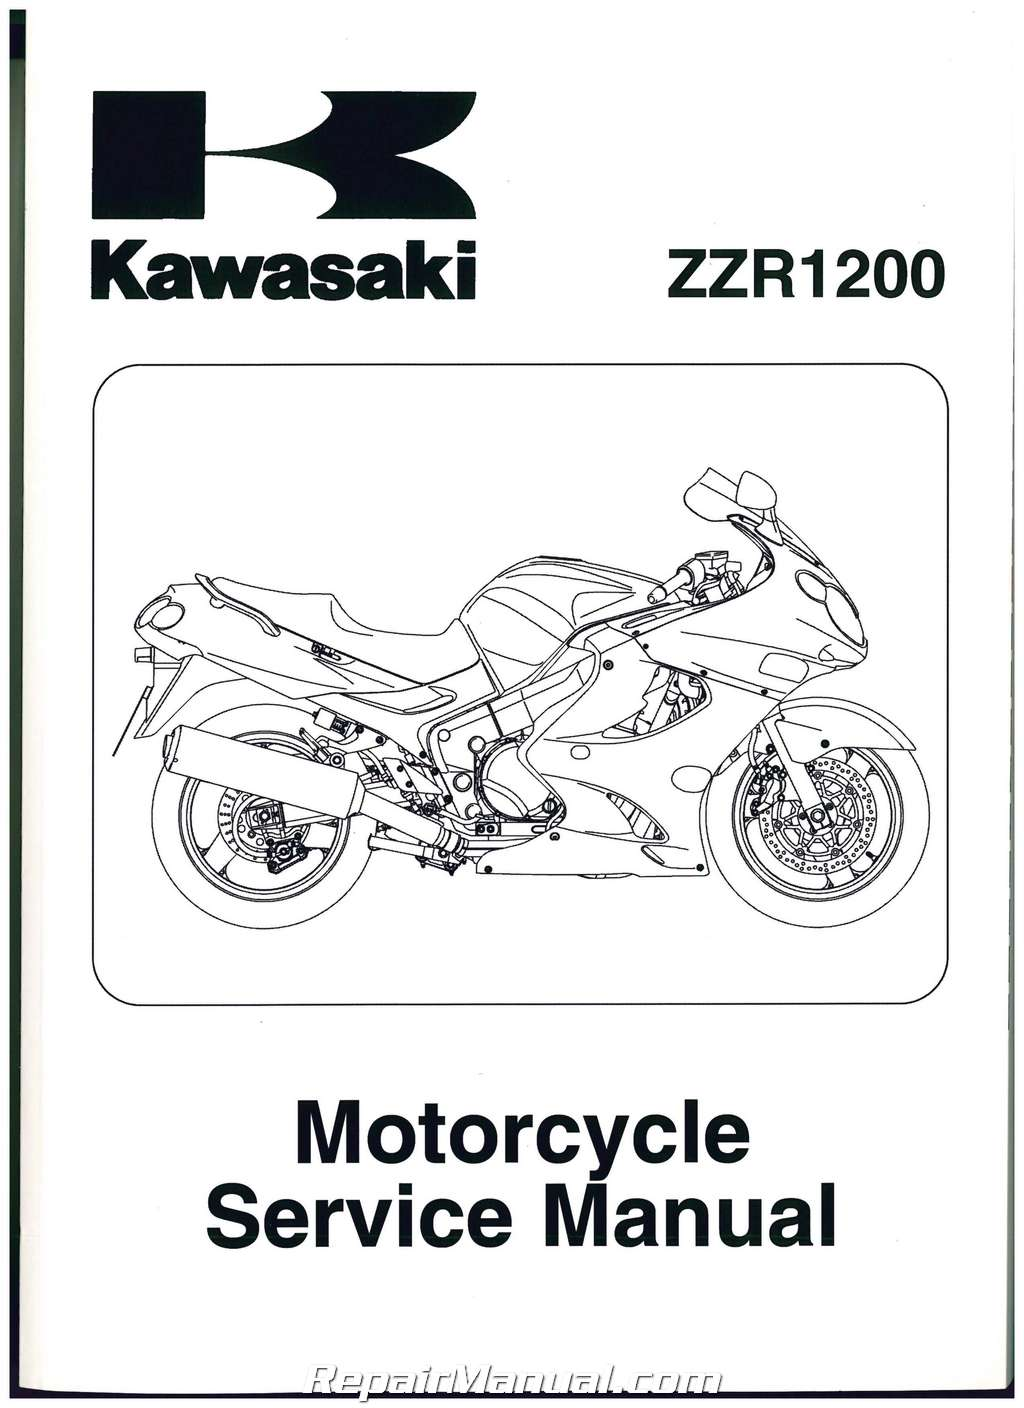 2002-2005 Kawasaki ZZR1200 Motorcycle Service Manual